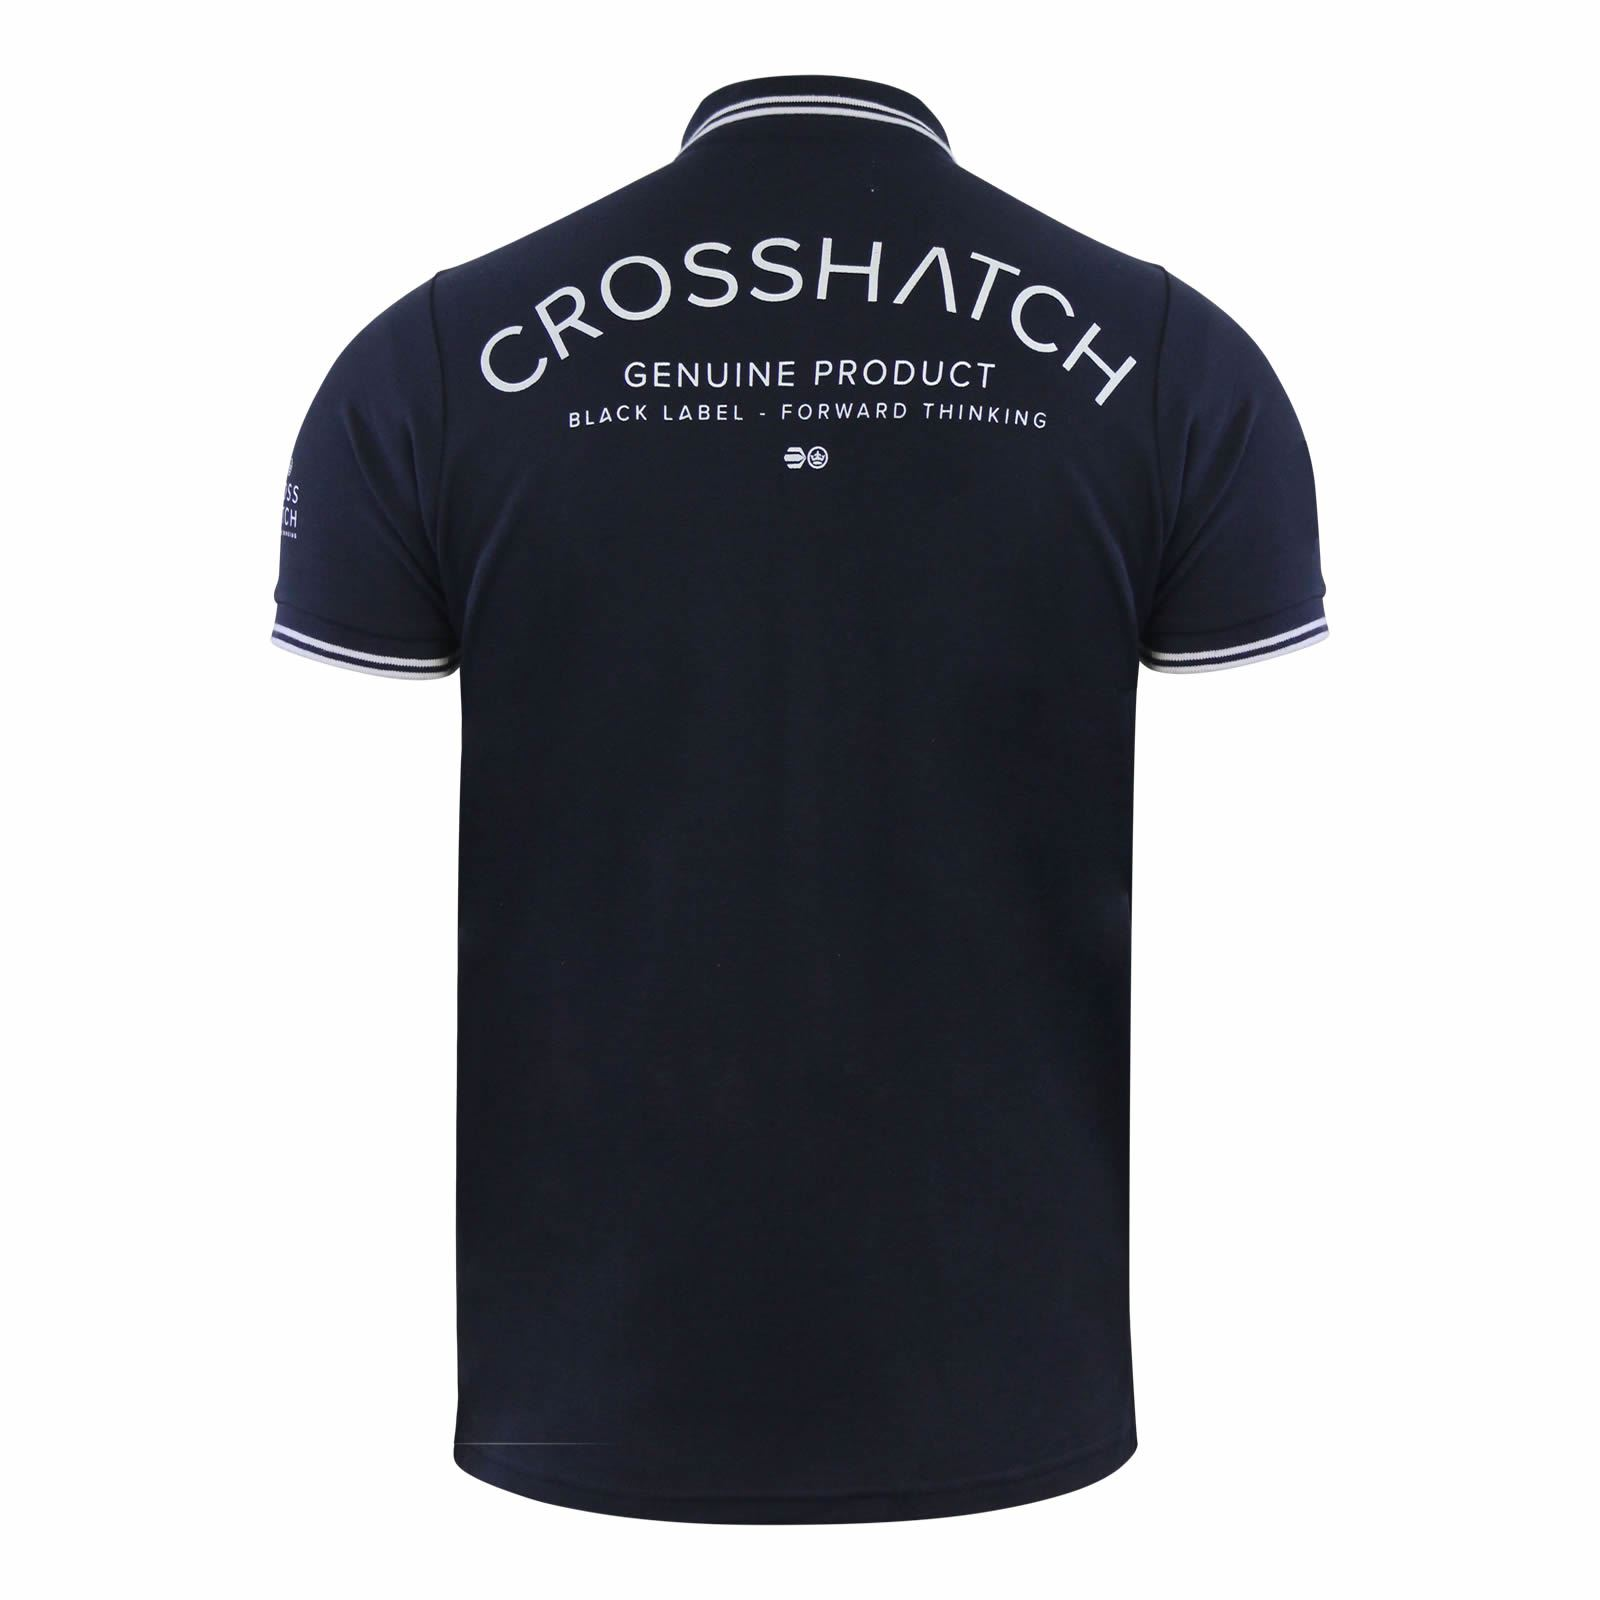 Crosshatch-Mens-Polo-T-Shirt-Pique-Polo-Cotton-Collared-Short-Sleeve-T-Shirt thumbnail 63